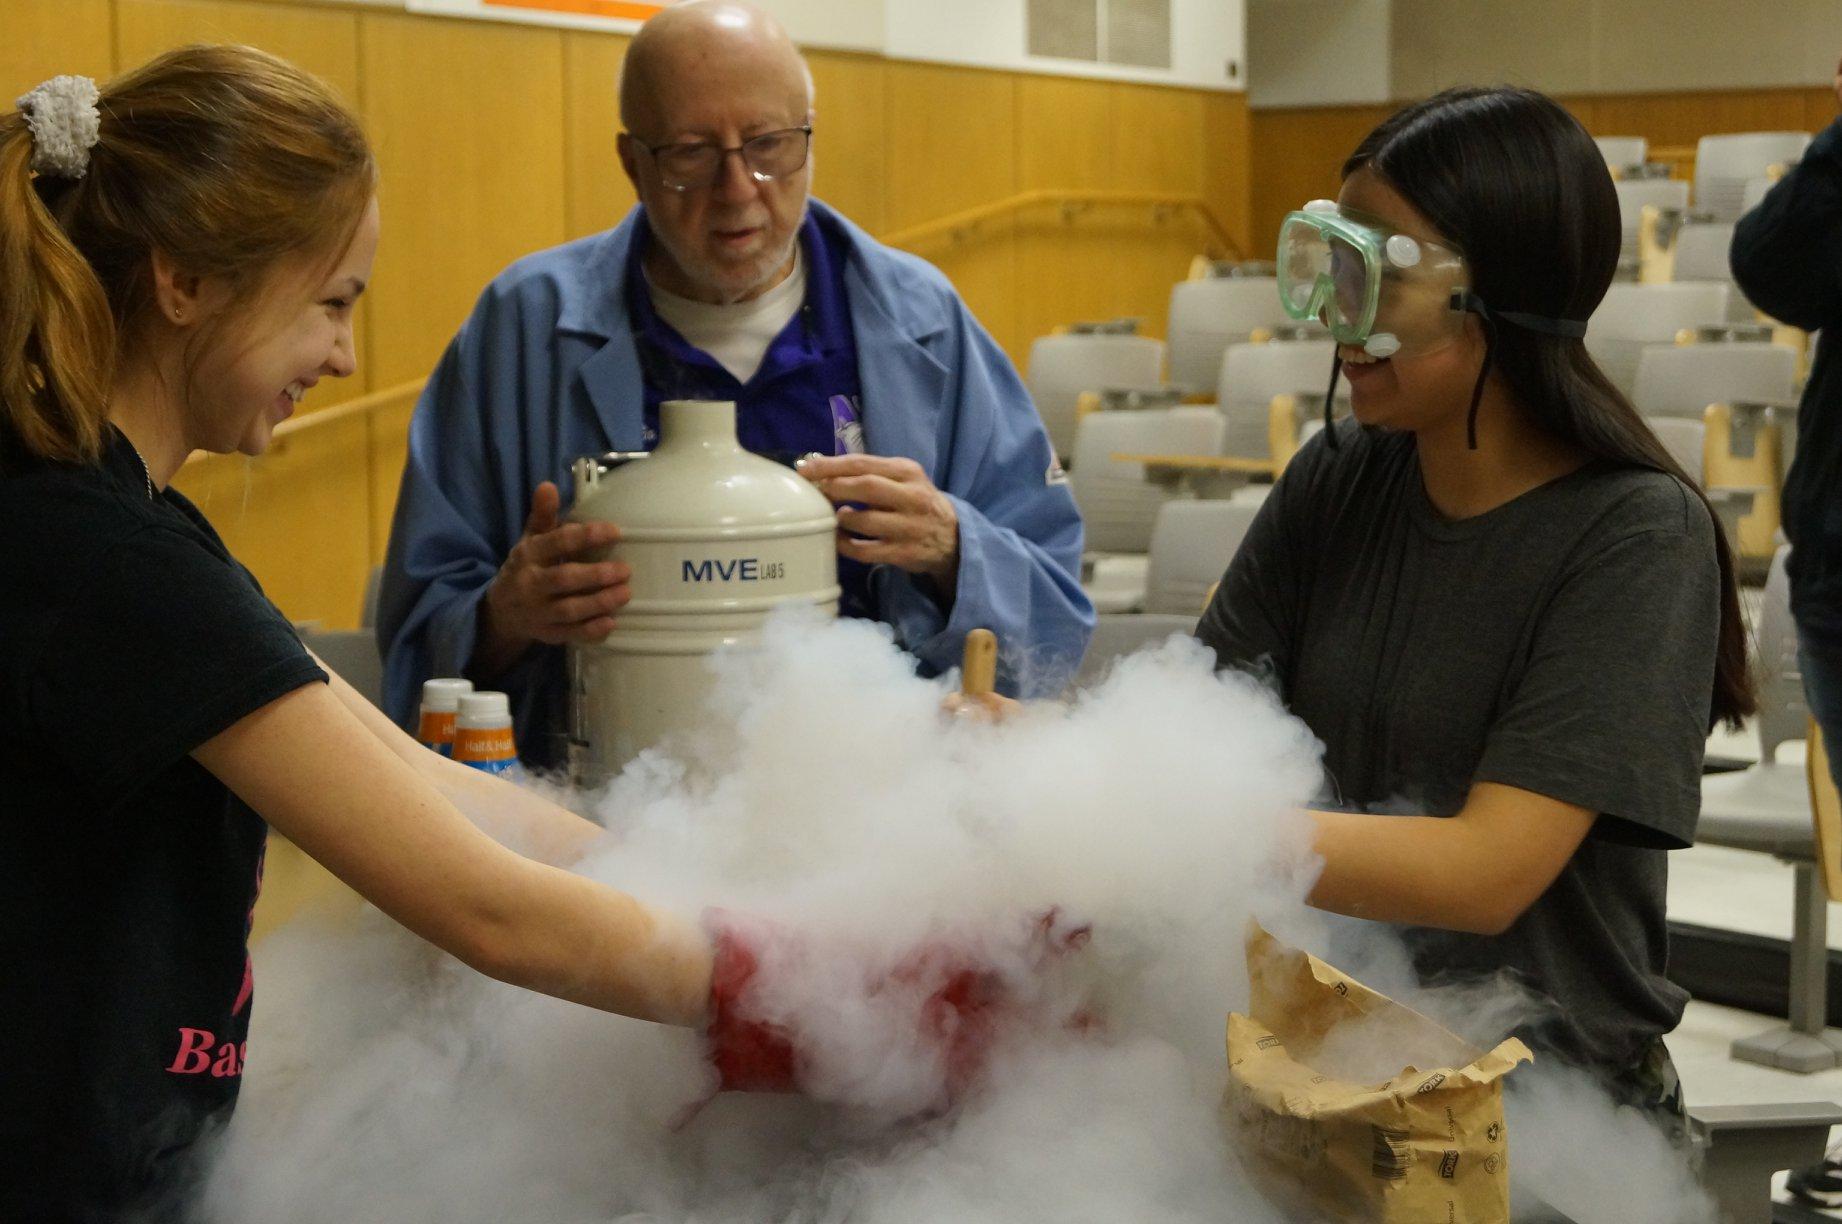 Prof. Art Schmidt makes liquid Nitrogen ice cream with the girls during his Magic of Physics Show, March 2019